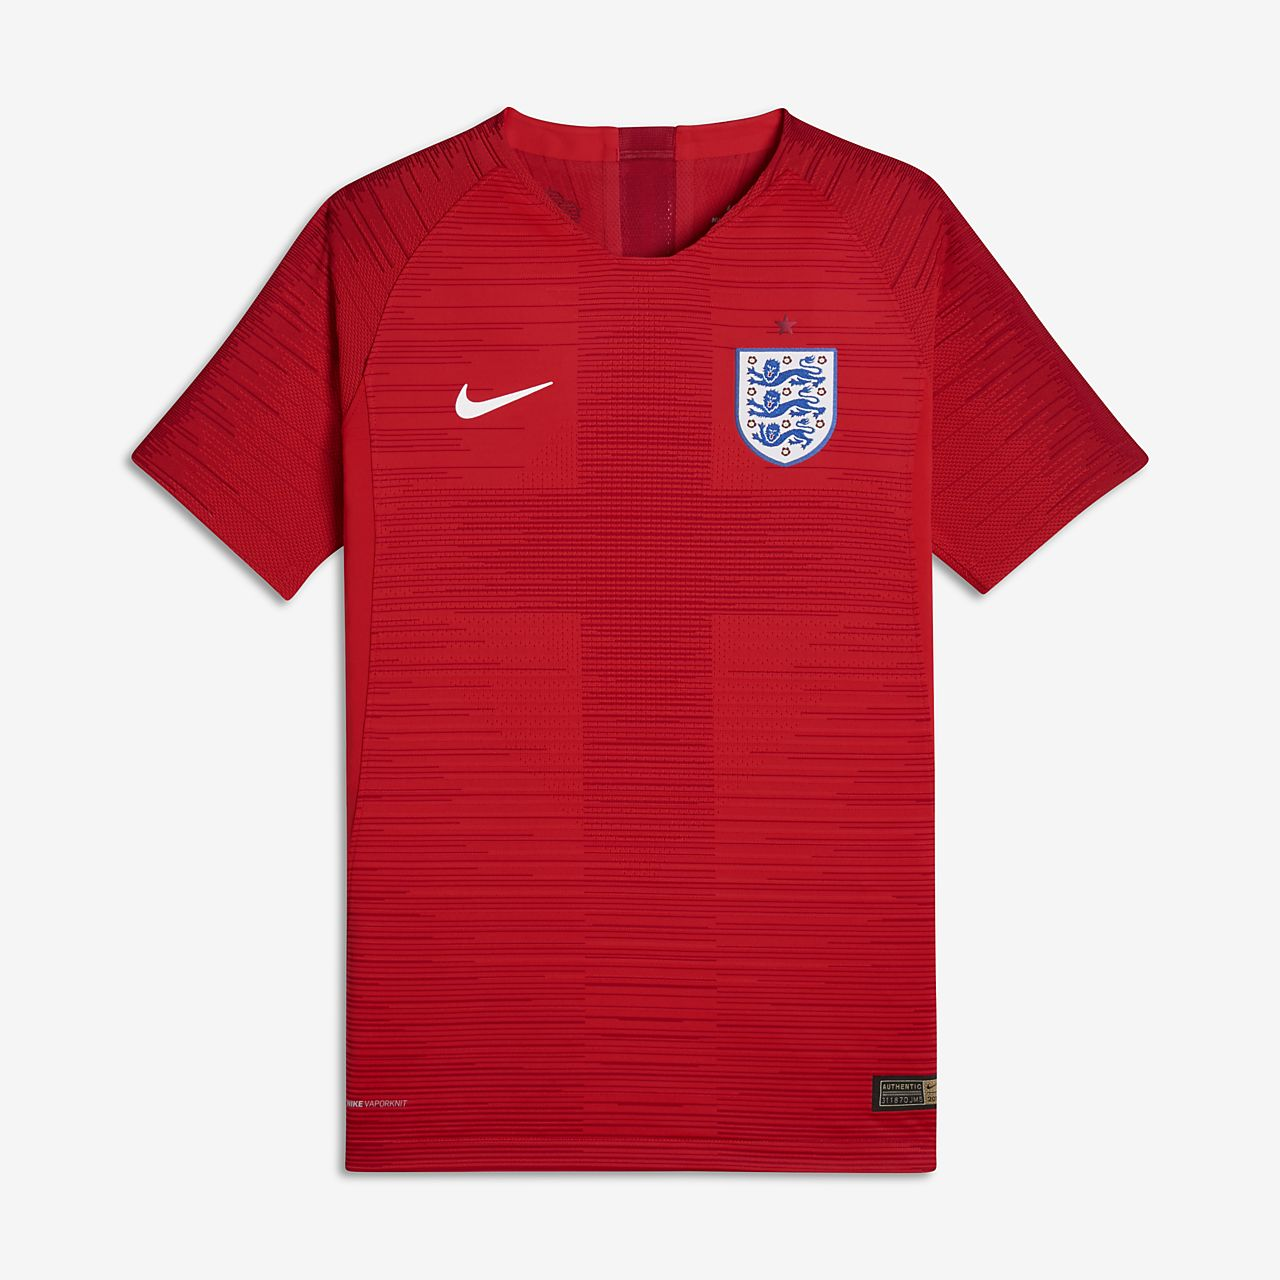 2018 England Vapor Match Away Older Kids' (Boys') Football Shirt